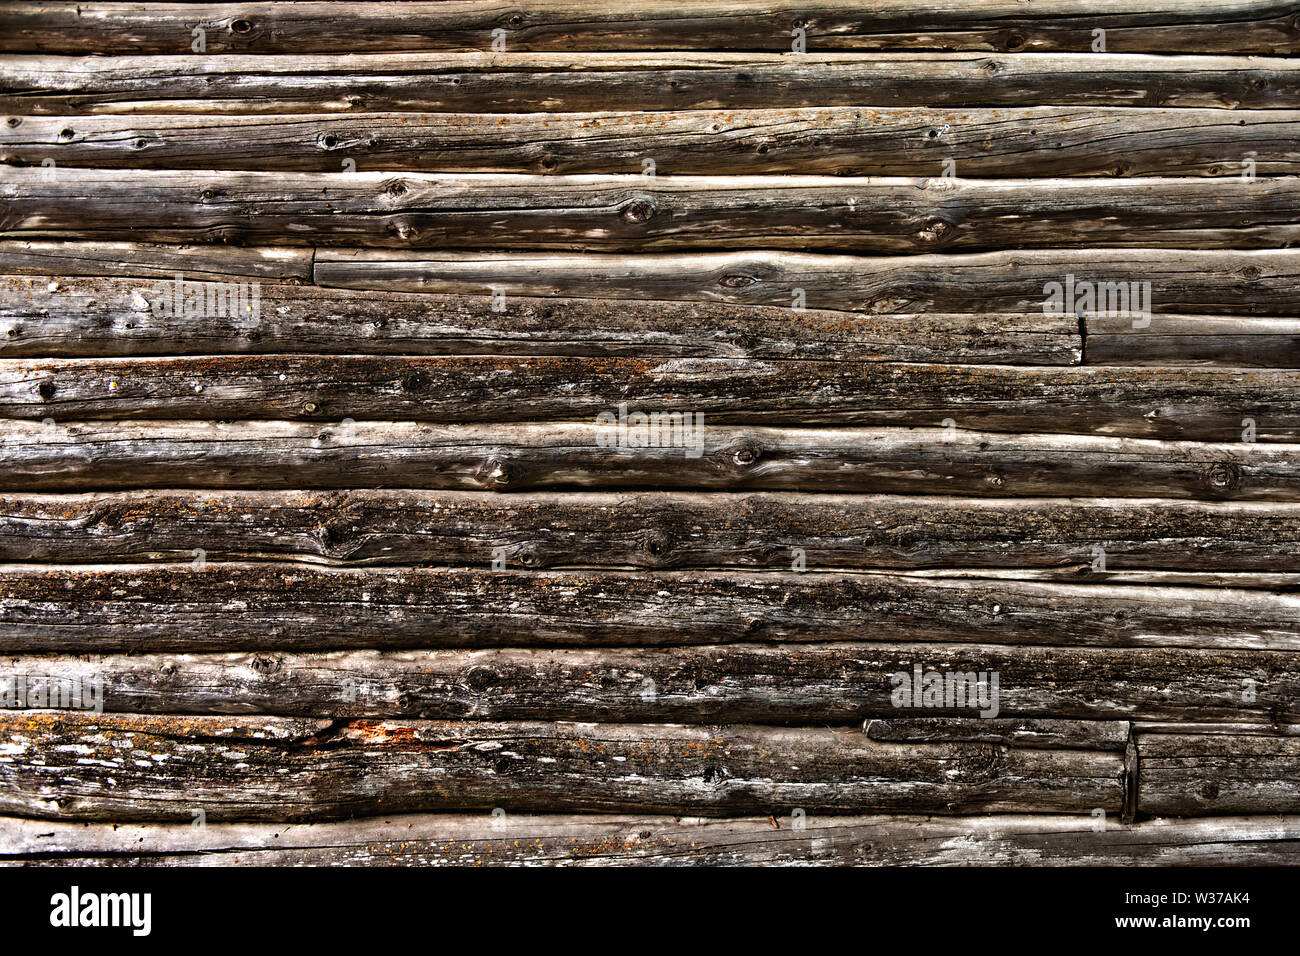 wall of old logs as a grunge background - Stock Image